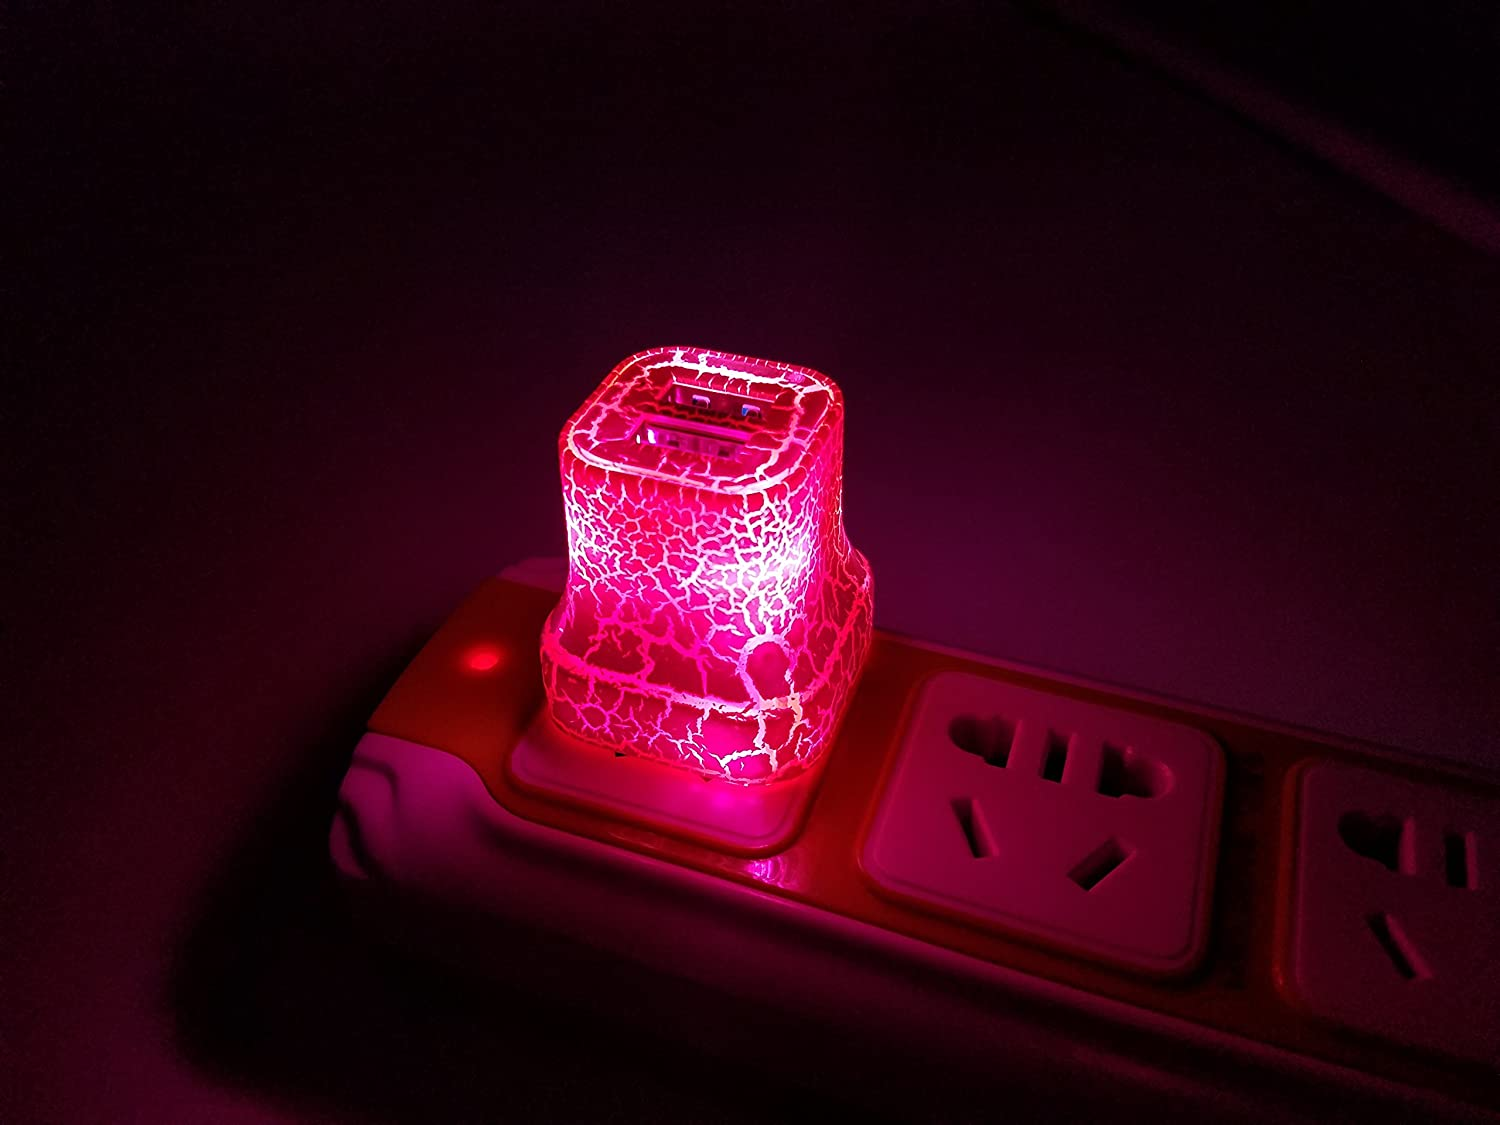 Pink YICHUMY 2 Amp Wall Charger Glow in The Dark Wall Charger 2-Port USB LED Charger for Phone XS Max//8 Plus 7 7 Plus iPod 5 Sony Xperia Z3 HTC M8 M9 LG Samsung Galaxy S7 S6 S4//S5//S6